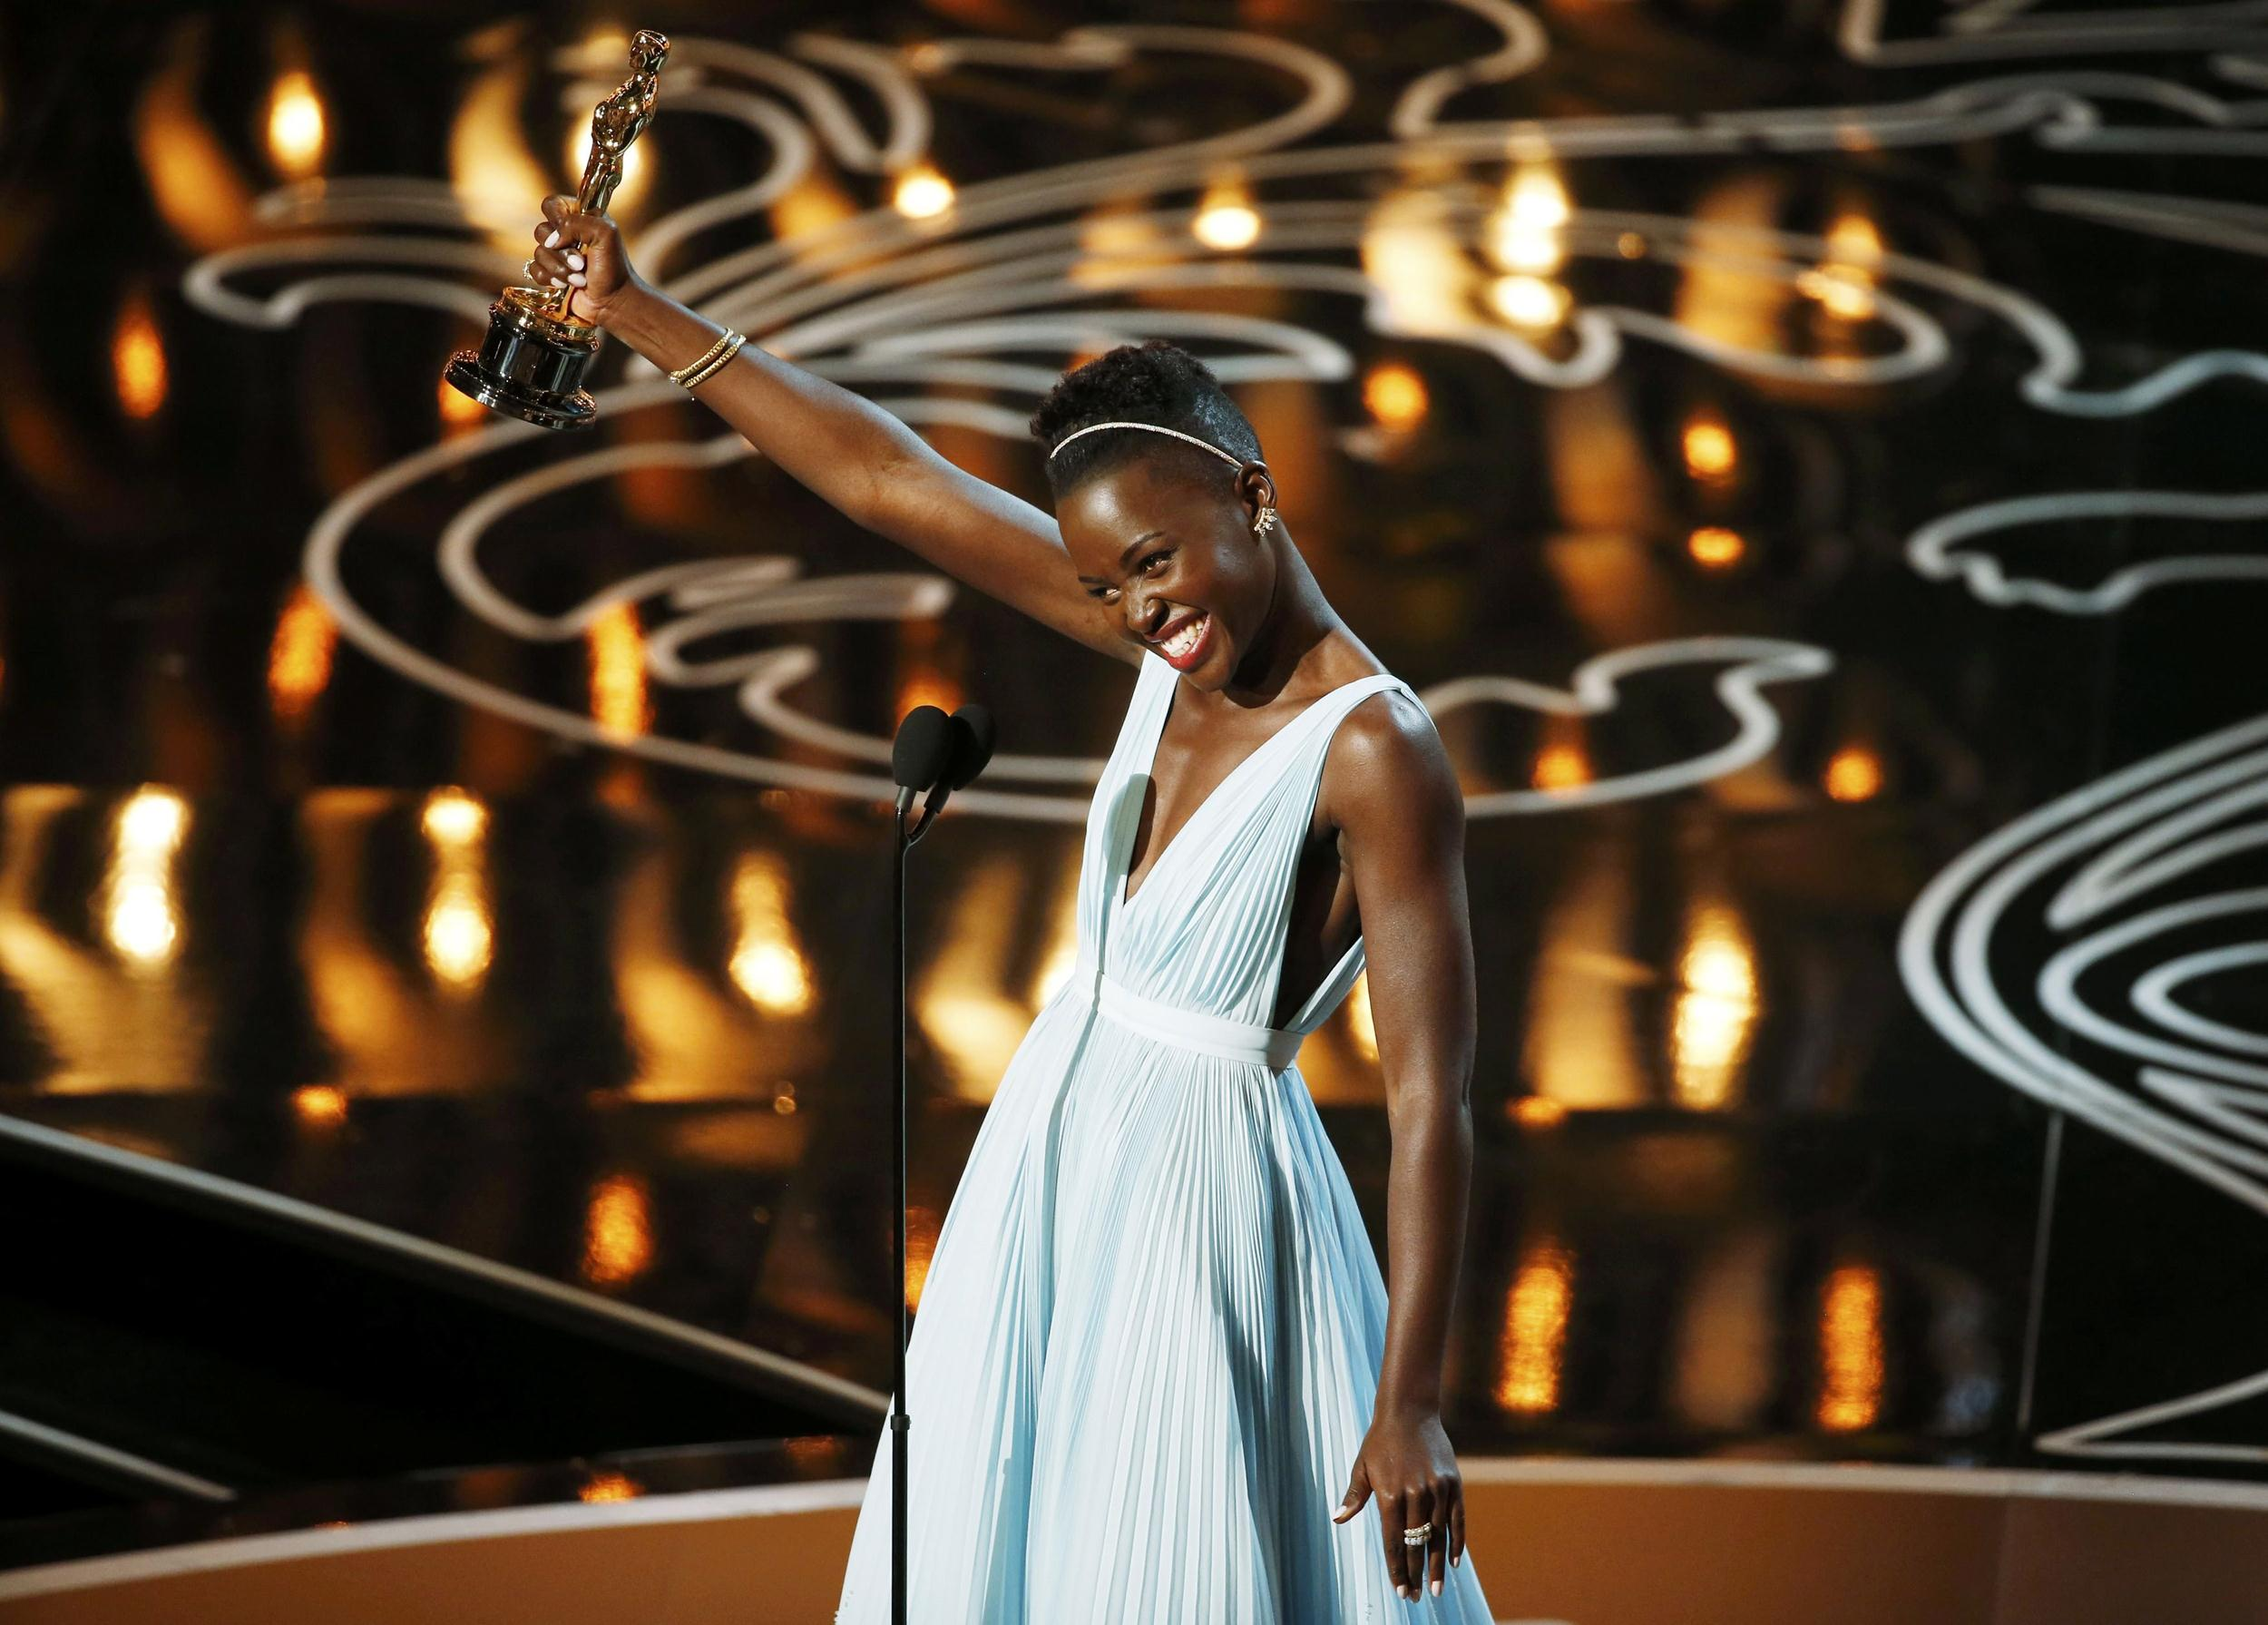 Image:  Nyong'o, best supporting actress winner for her role in